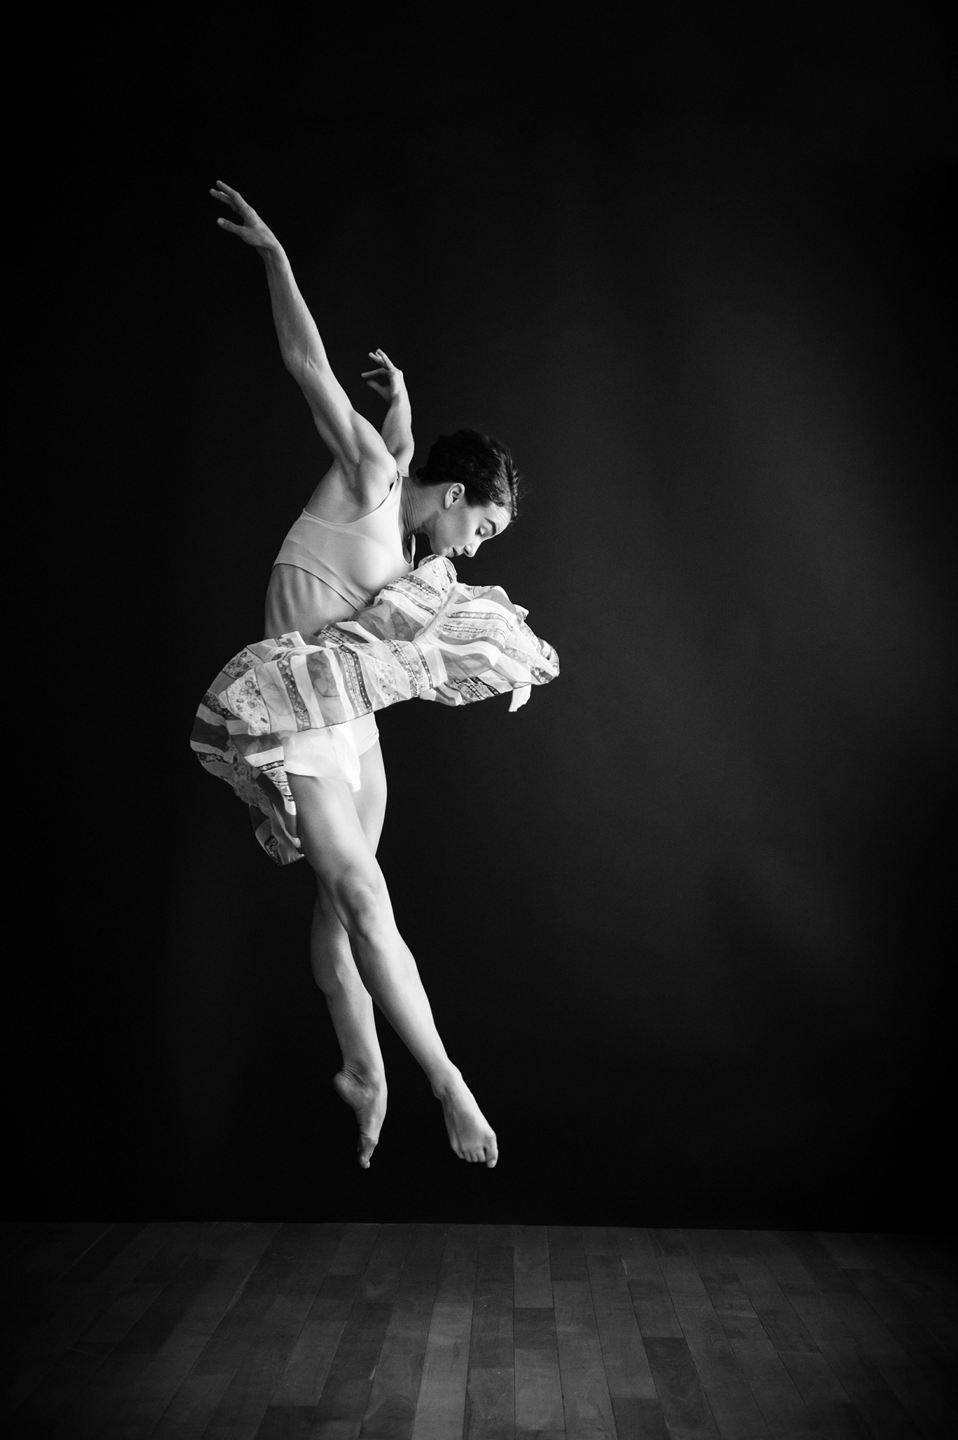 Los Angeles Dance Portrait Photo - Olga Sokolova - by Tommy Xing Photography 24.JPG